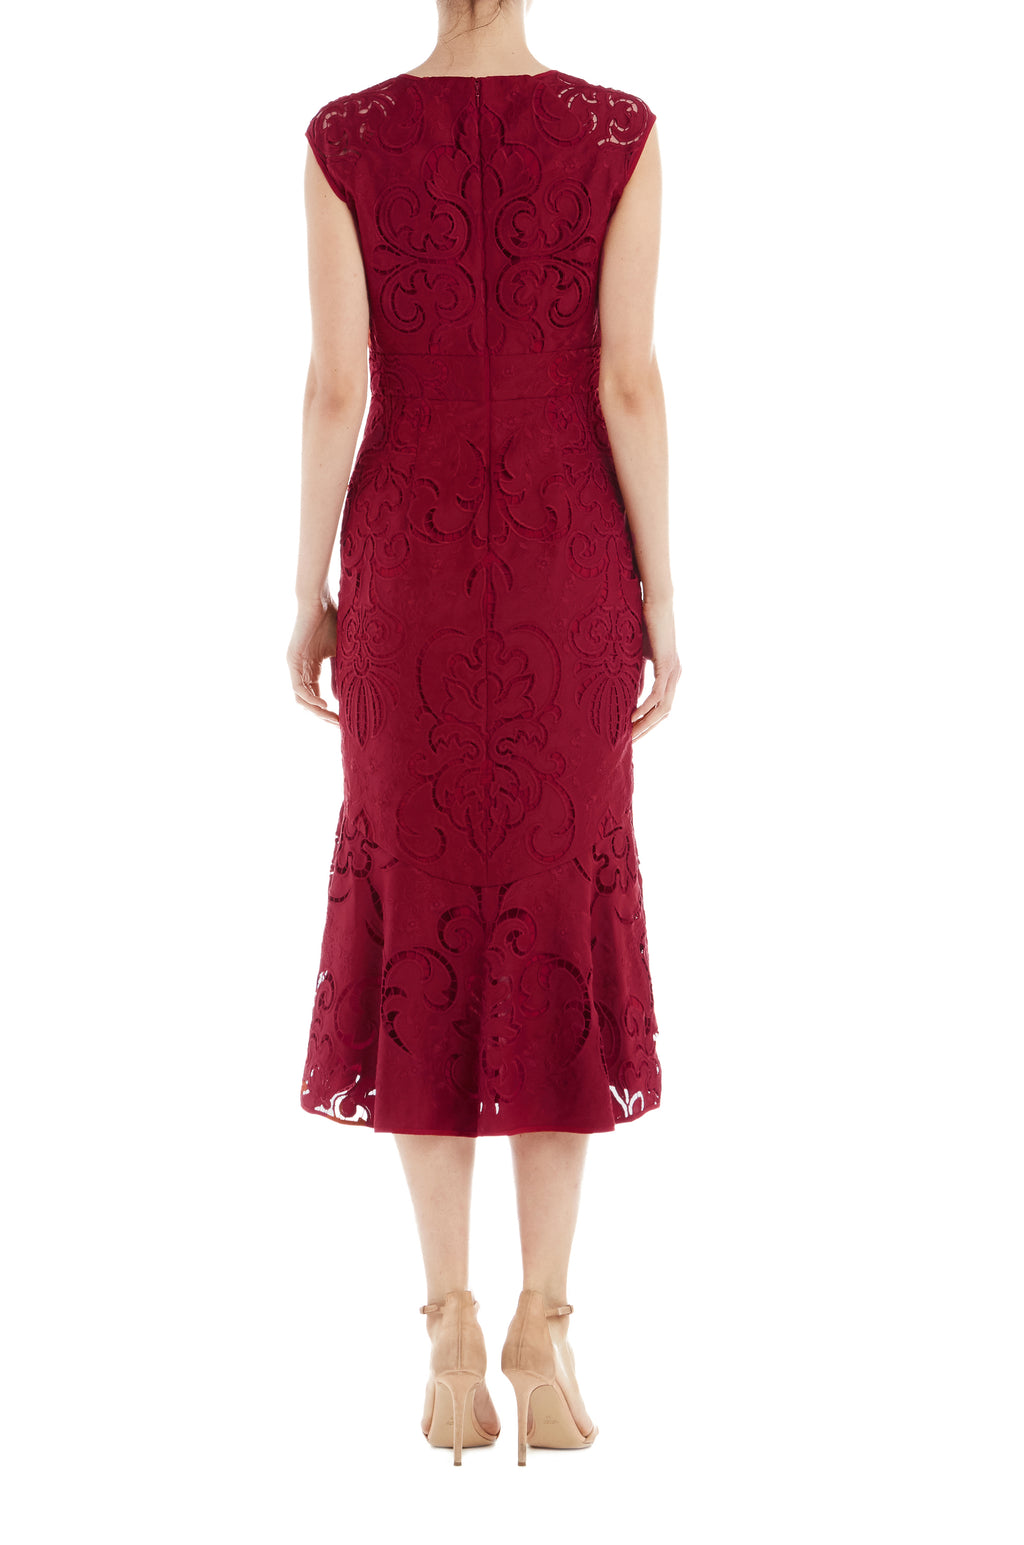 ML Monique Lhuillier Embroidered Dress- FINAL SALE